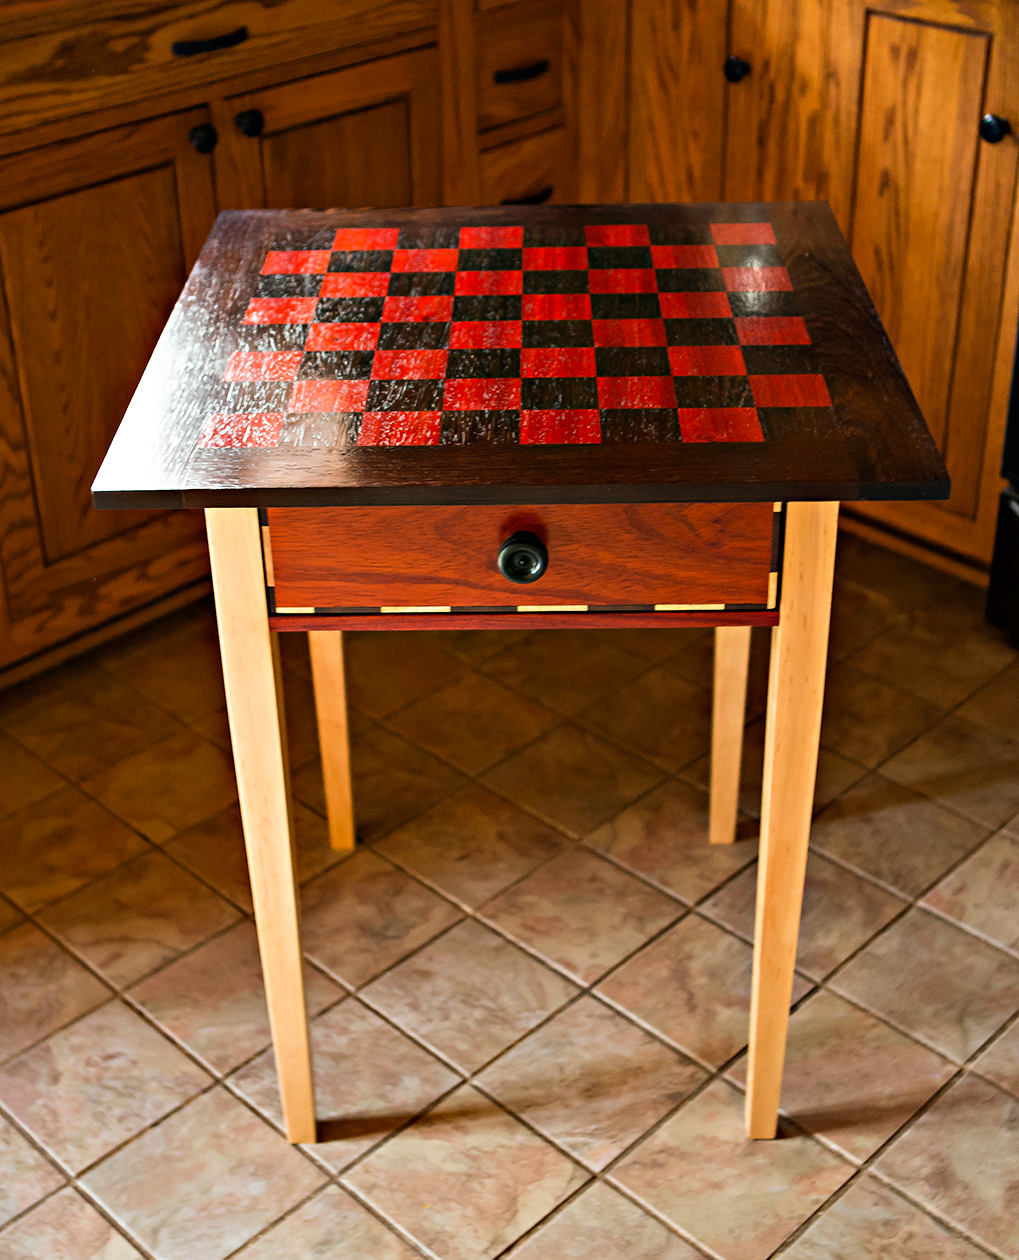 Chess Table Beautiful Exotic Wood Handcrafted Mission Chess Tables Checkers Table Handmade Custom Chess Table Chess Set Christmas Wedding Anniversary